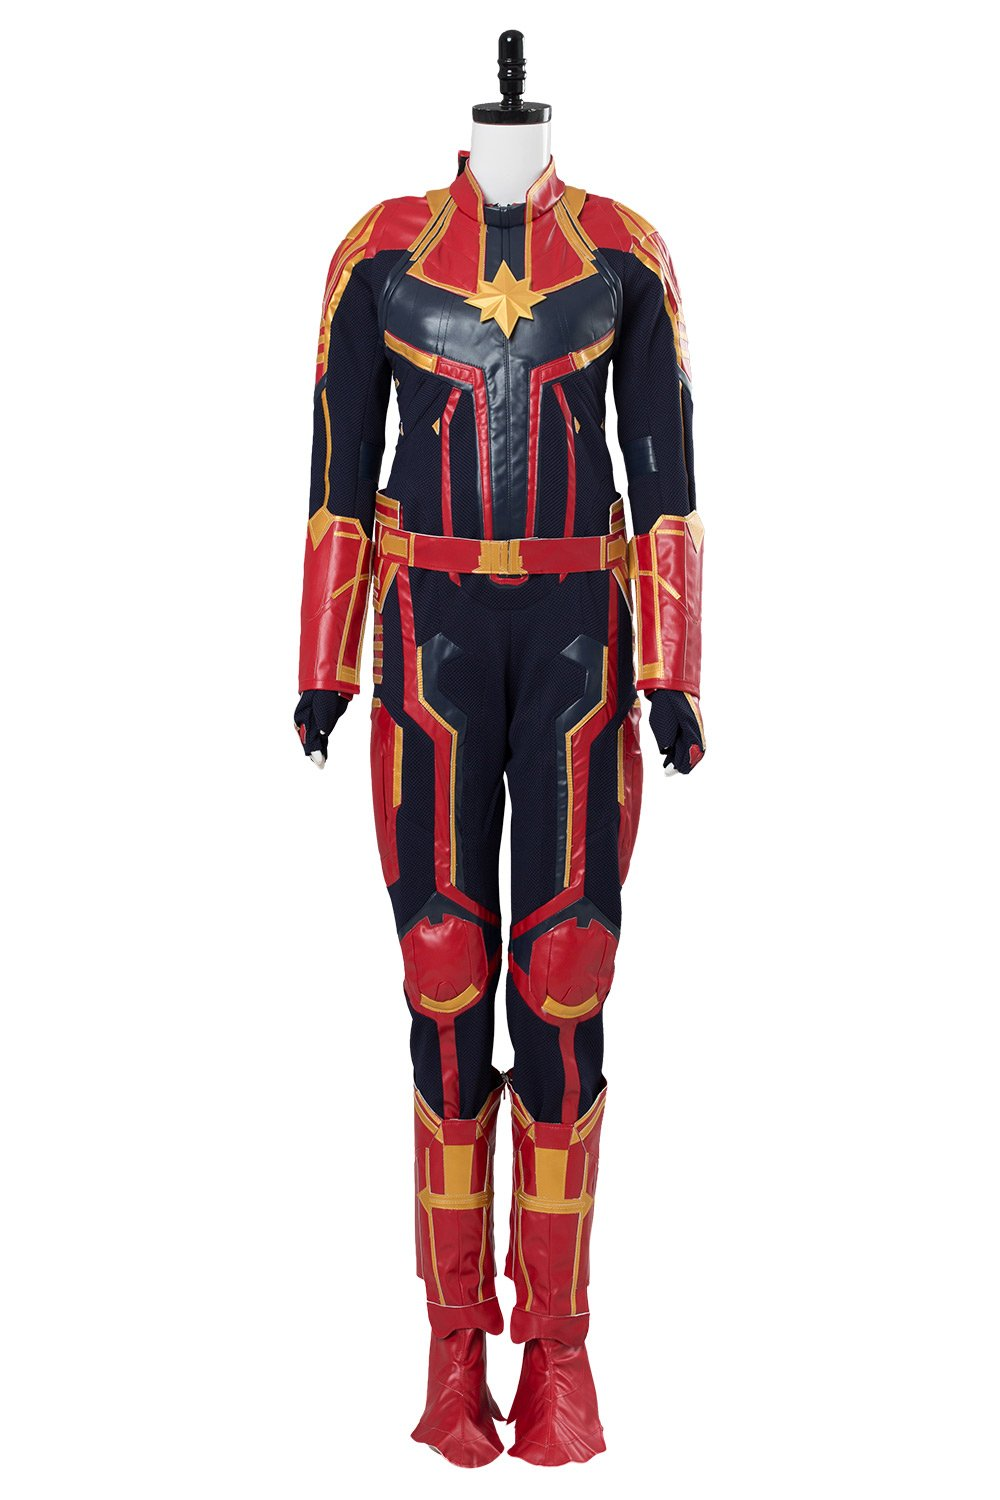 avengers 4 captain marvel carol danvers jumpsuit outfit female super h cossky uk